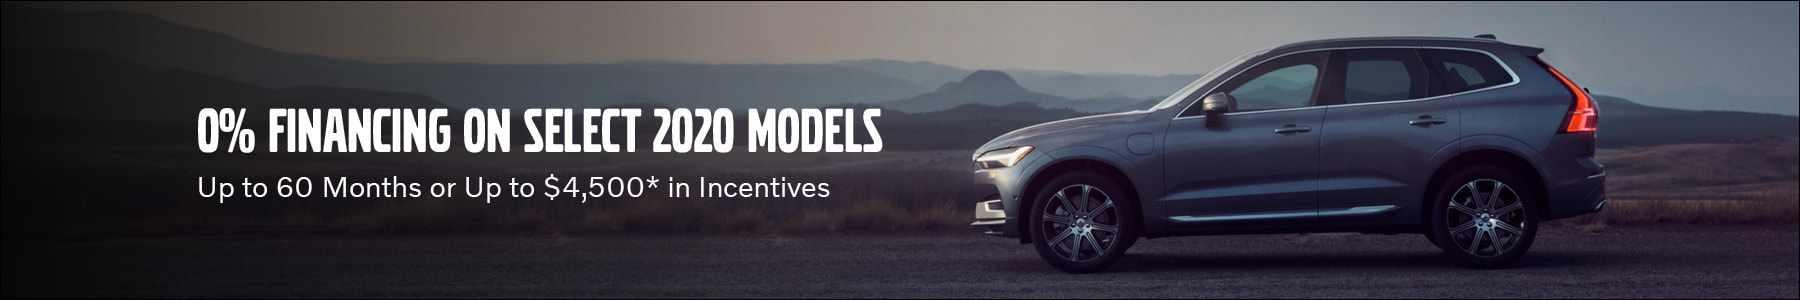 0% Financing on Select 2020 Models for Up to 60 Months or Up to $4,500* in Incentives.